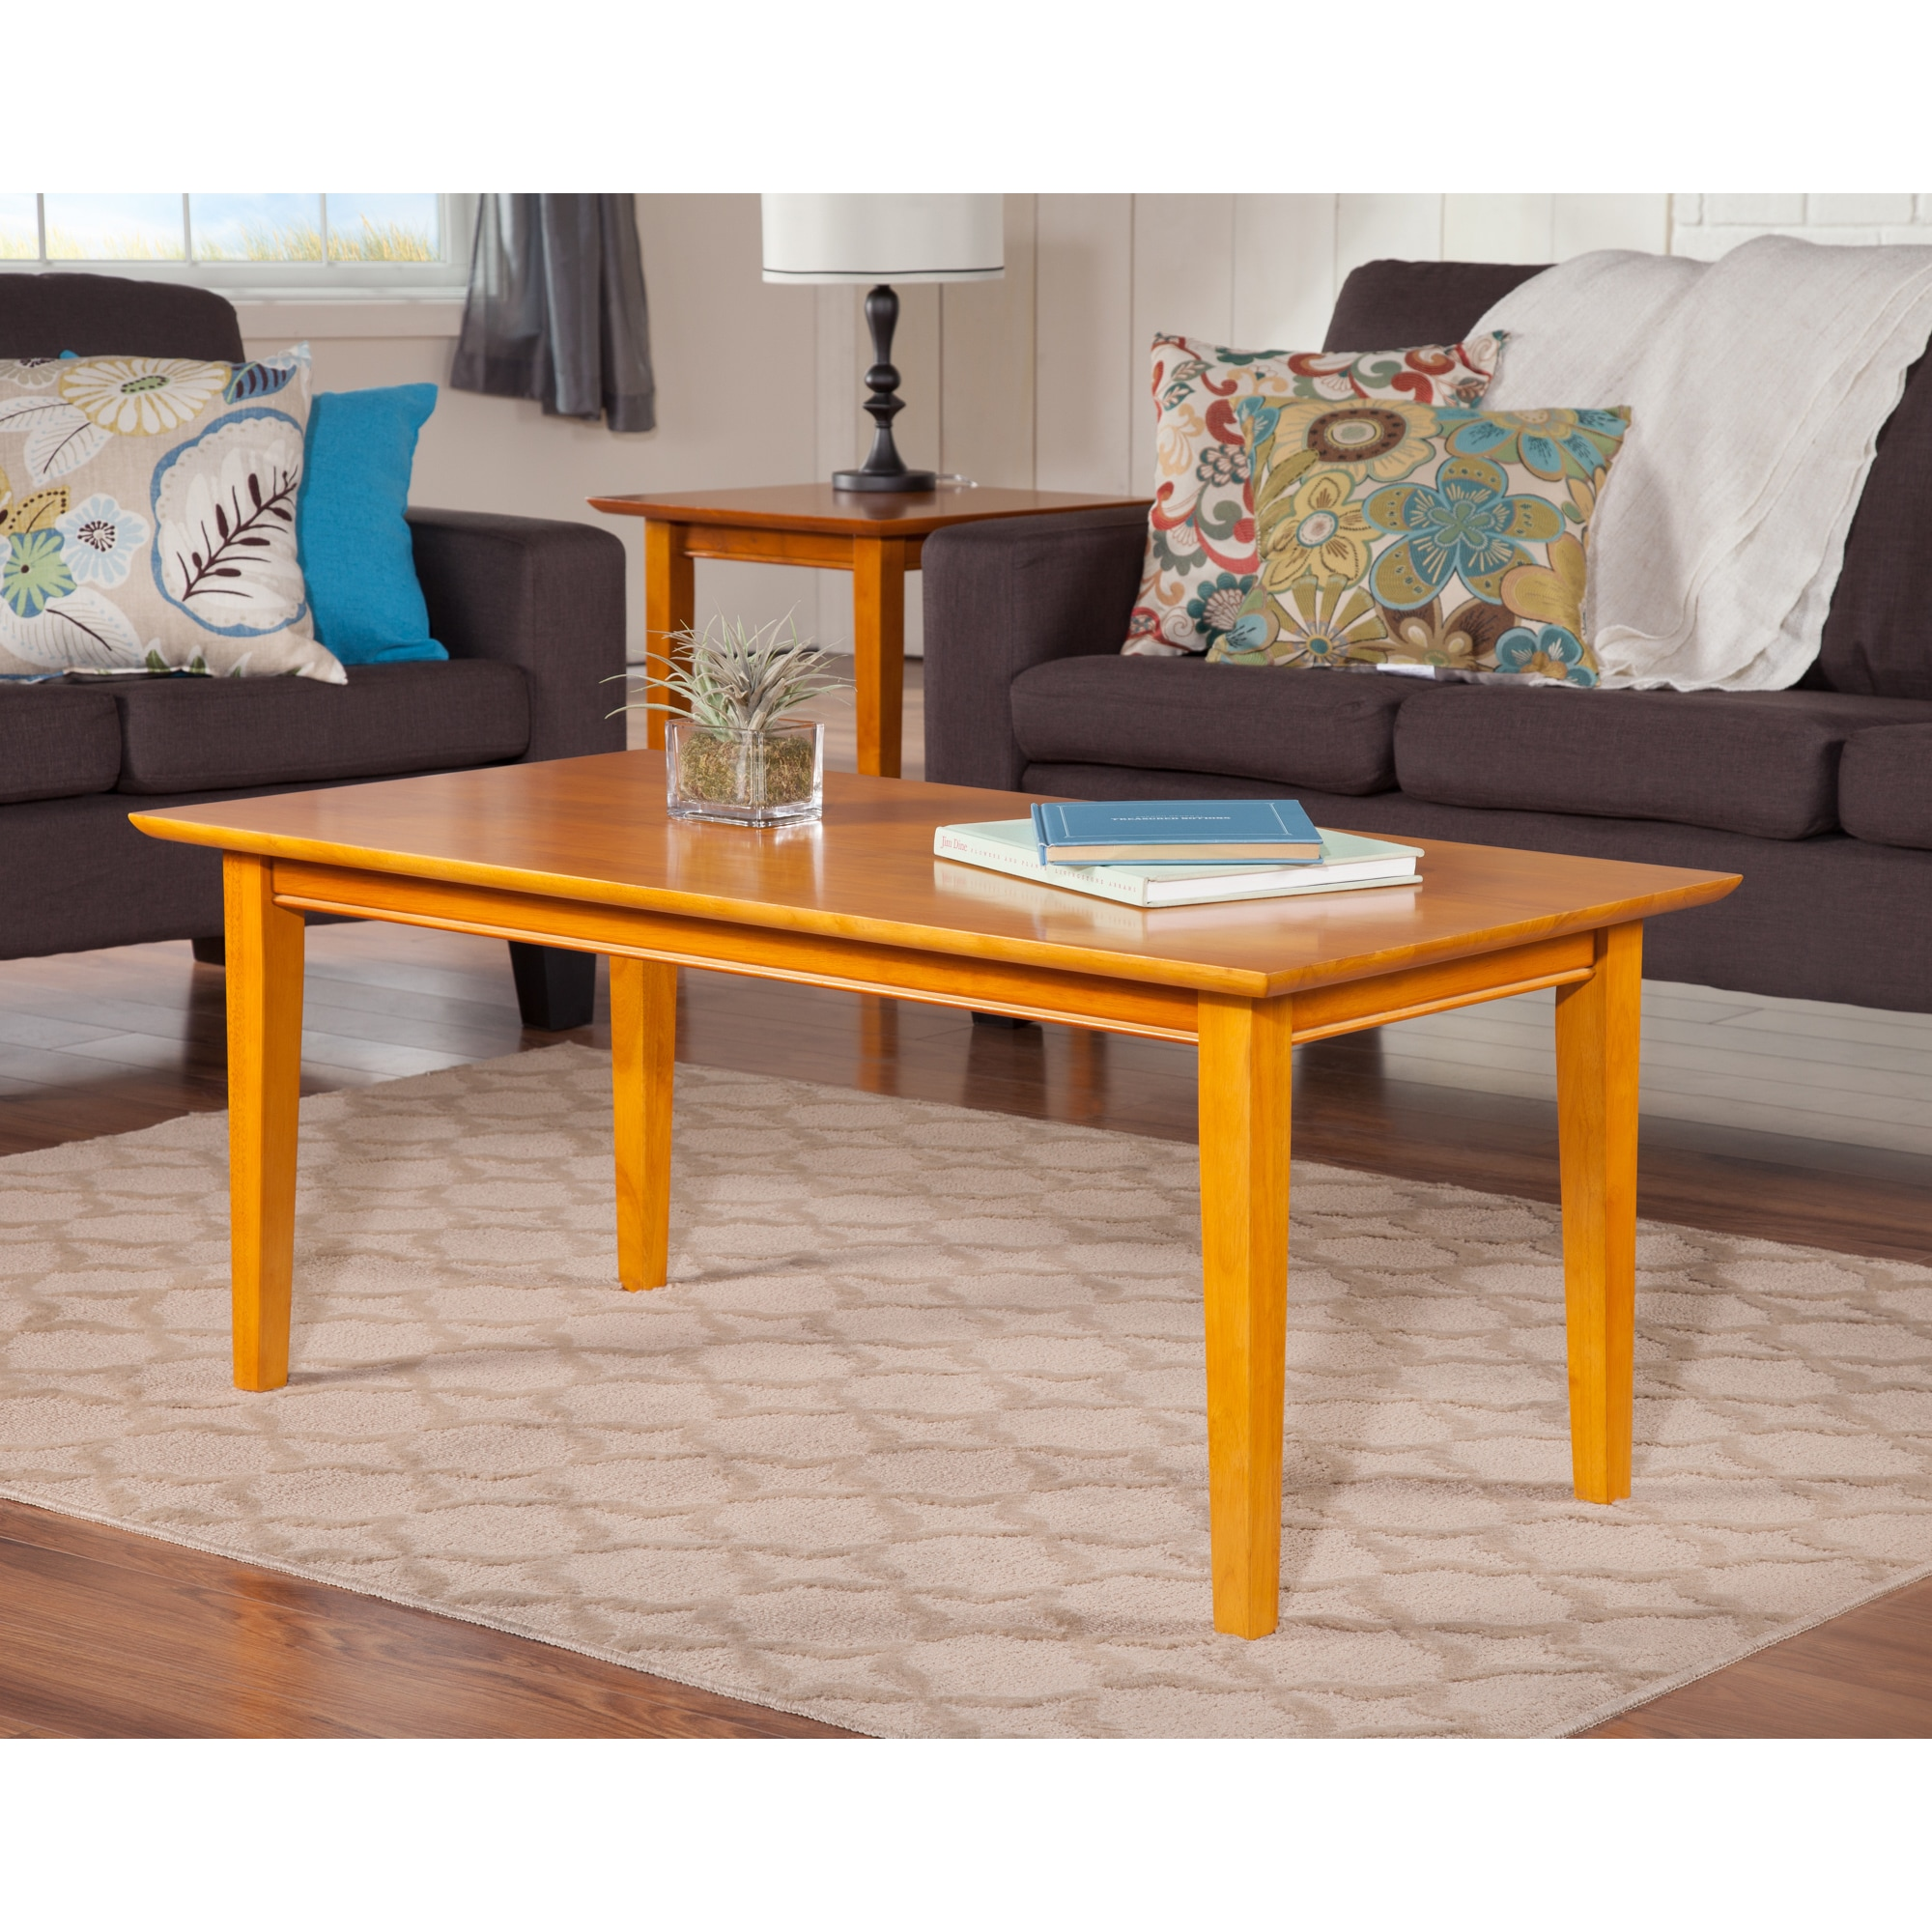 Caramel Latte Shaker Coffee Table